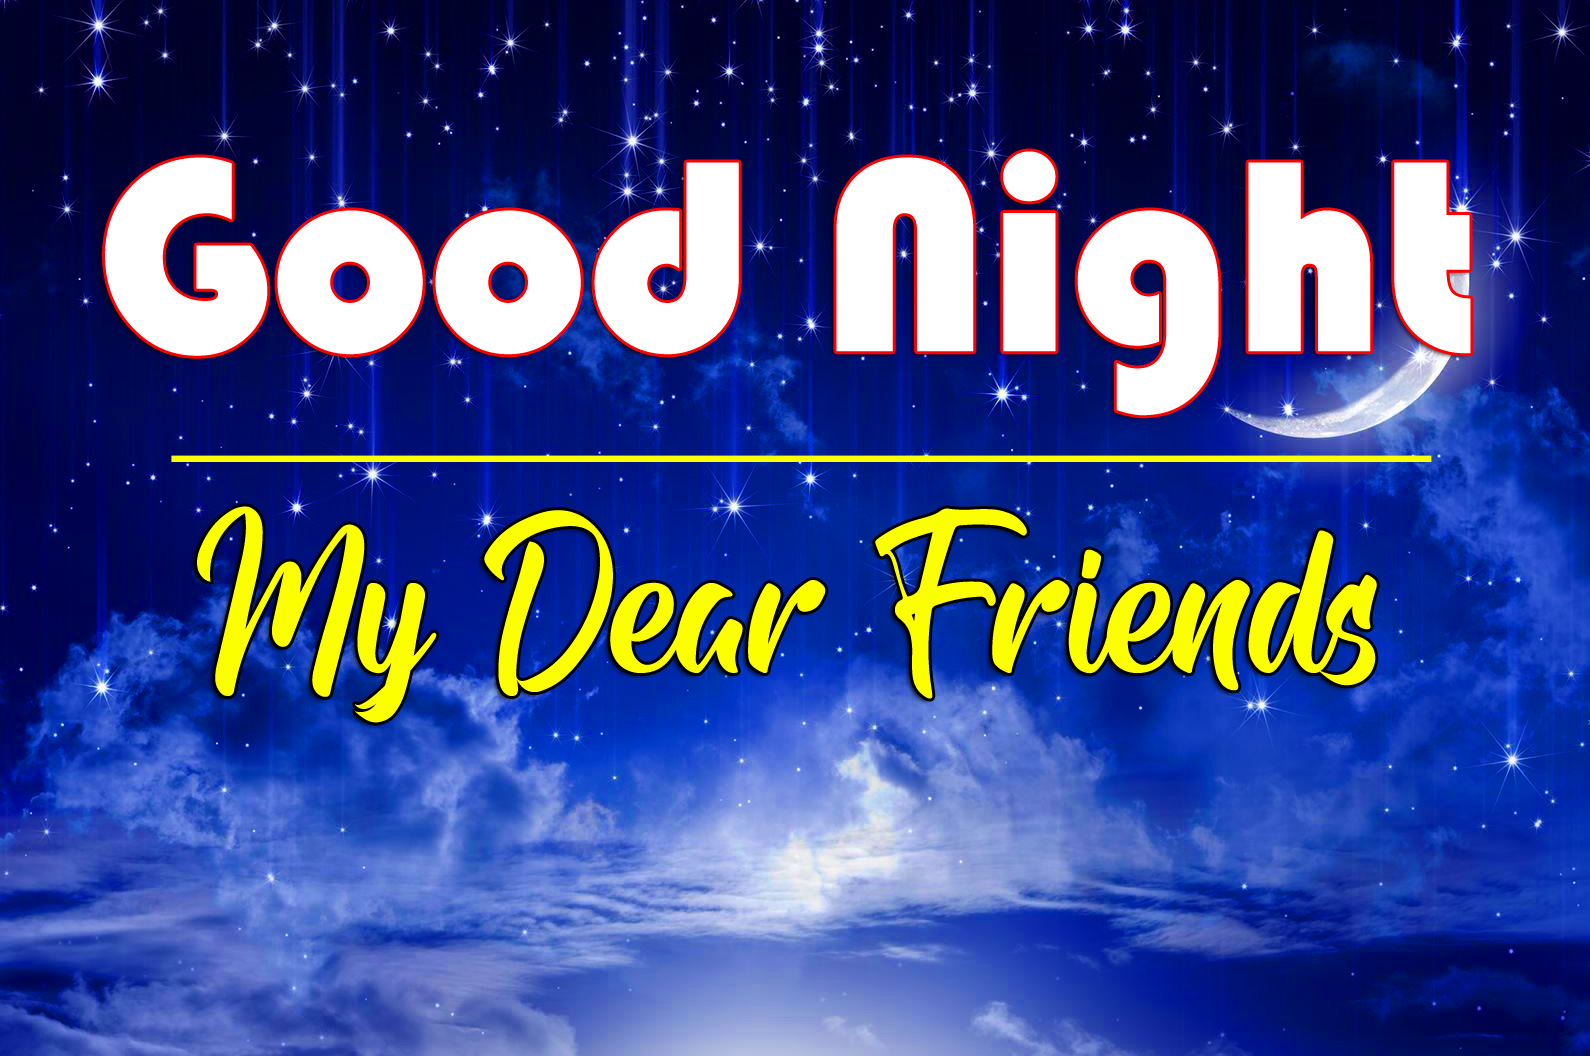 Free Best Quality 4k Good Night Images Pics Download 2